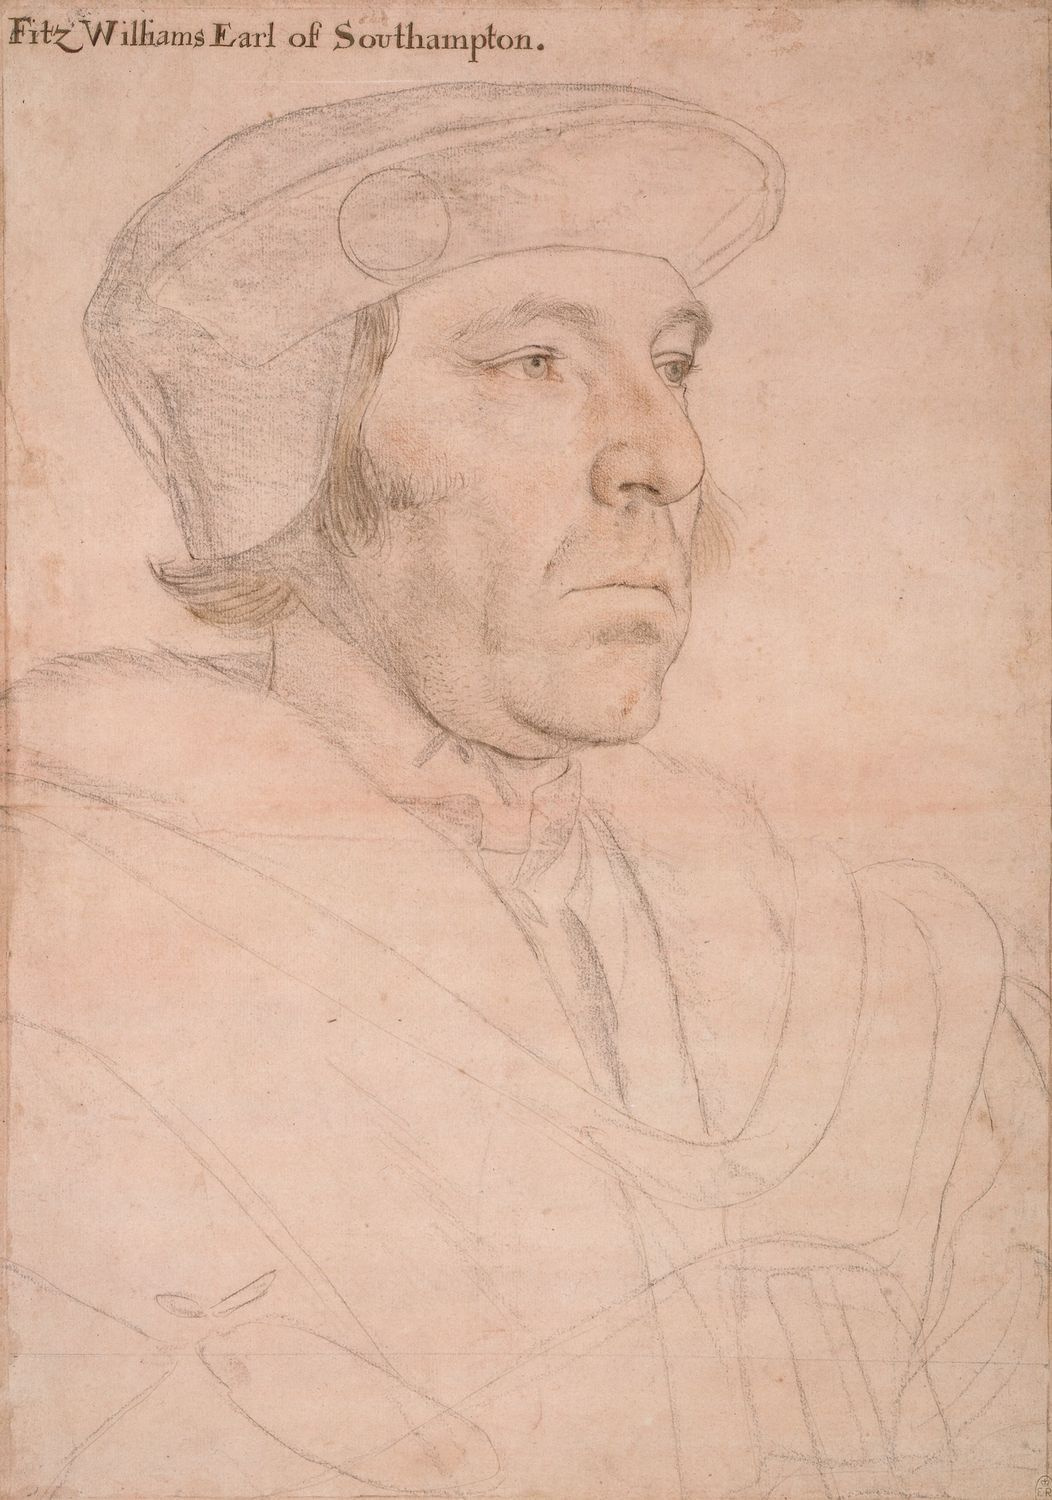 Portrait of William FitzWilliam, 1st Earl of Southampton. c.1536-40